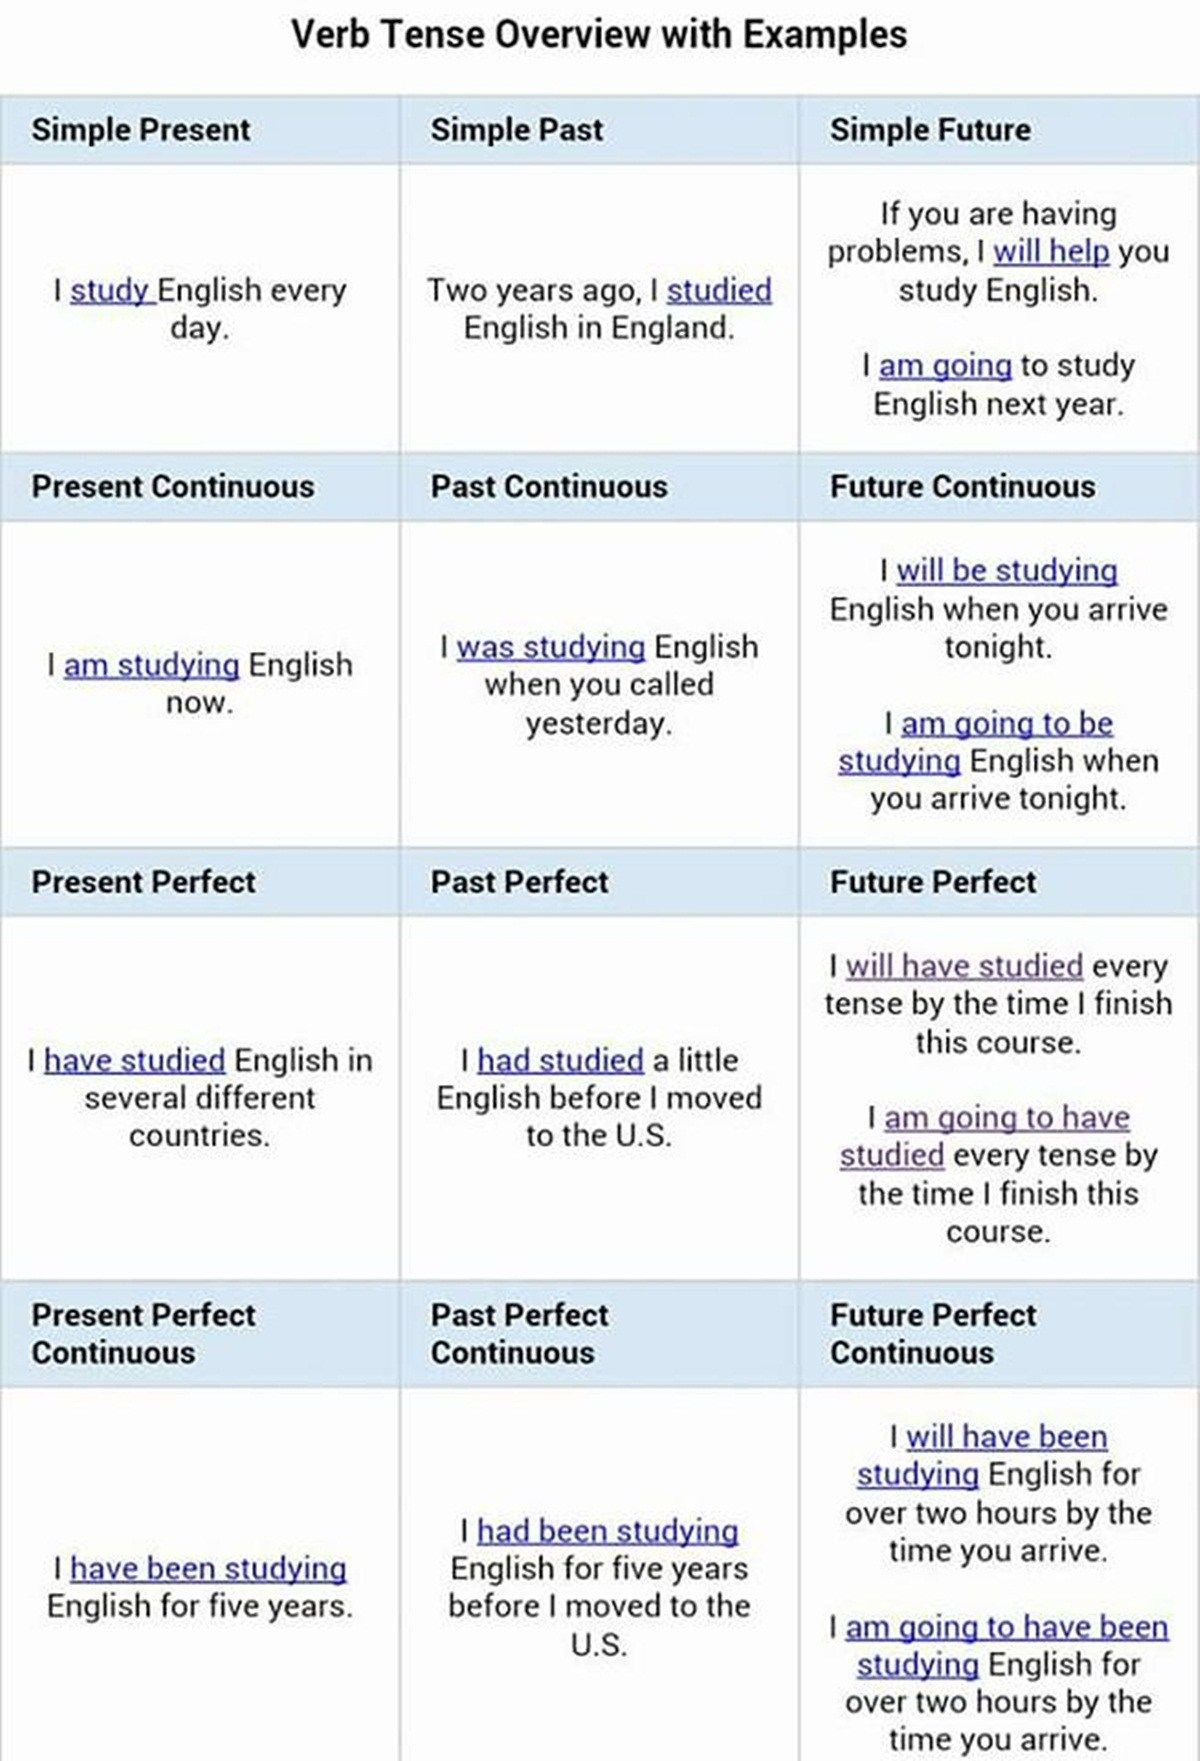 Verb Tense Overview With Examples Verb Tenses English Verbs Learn English